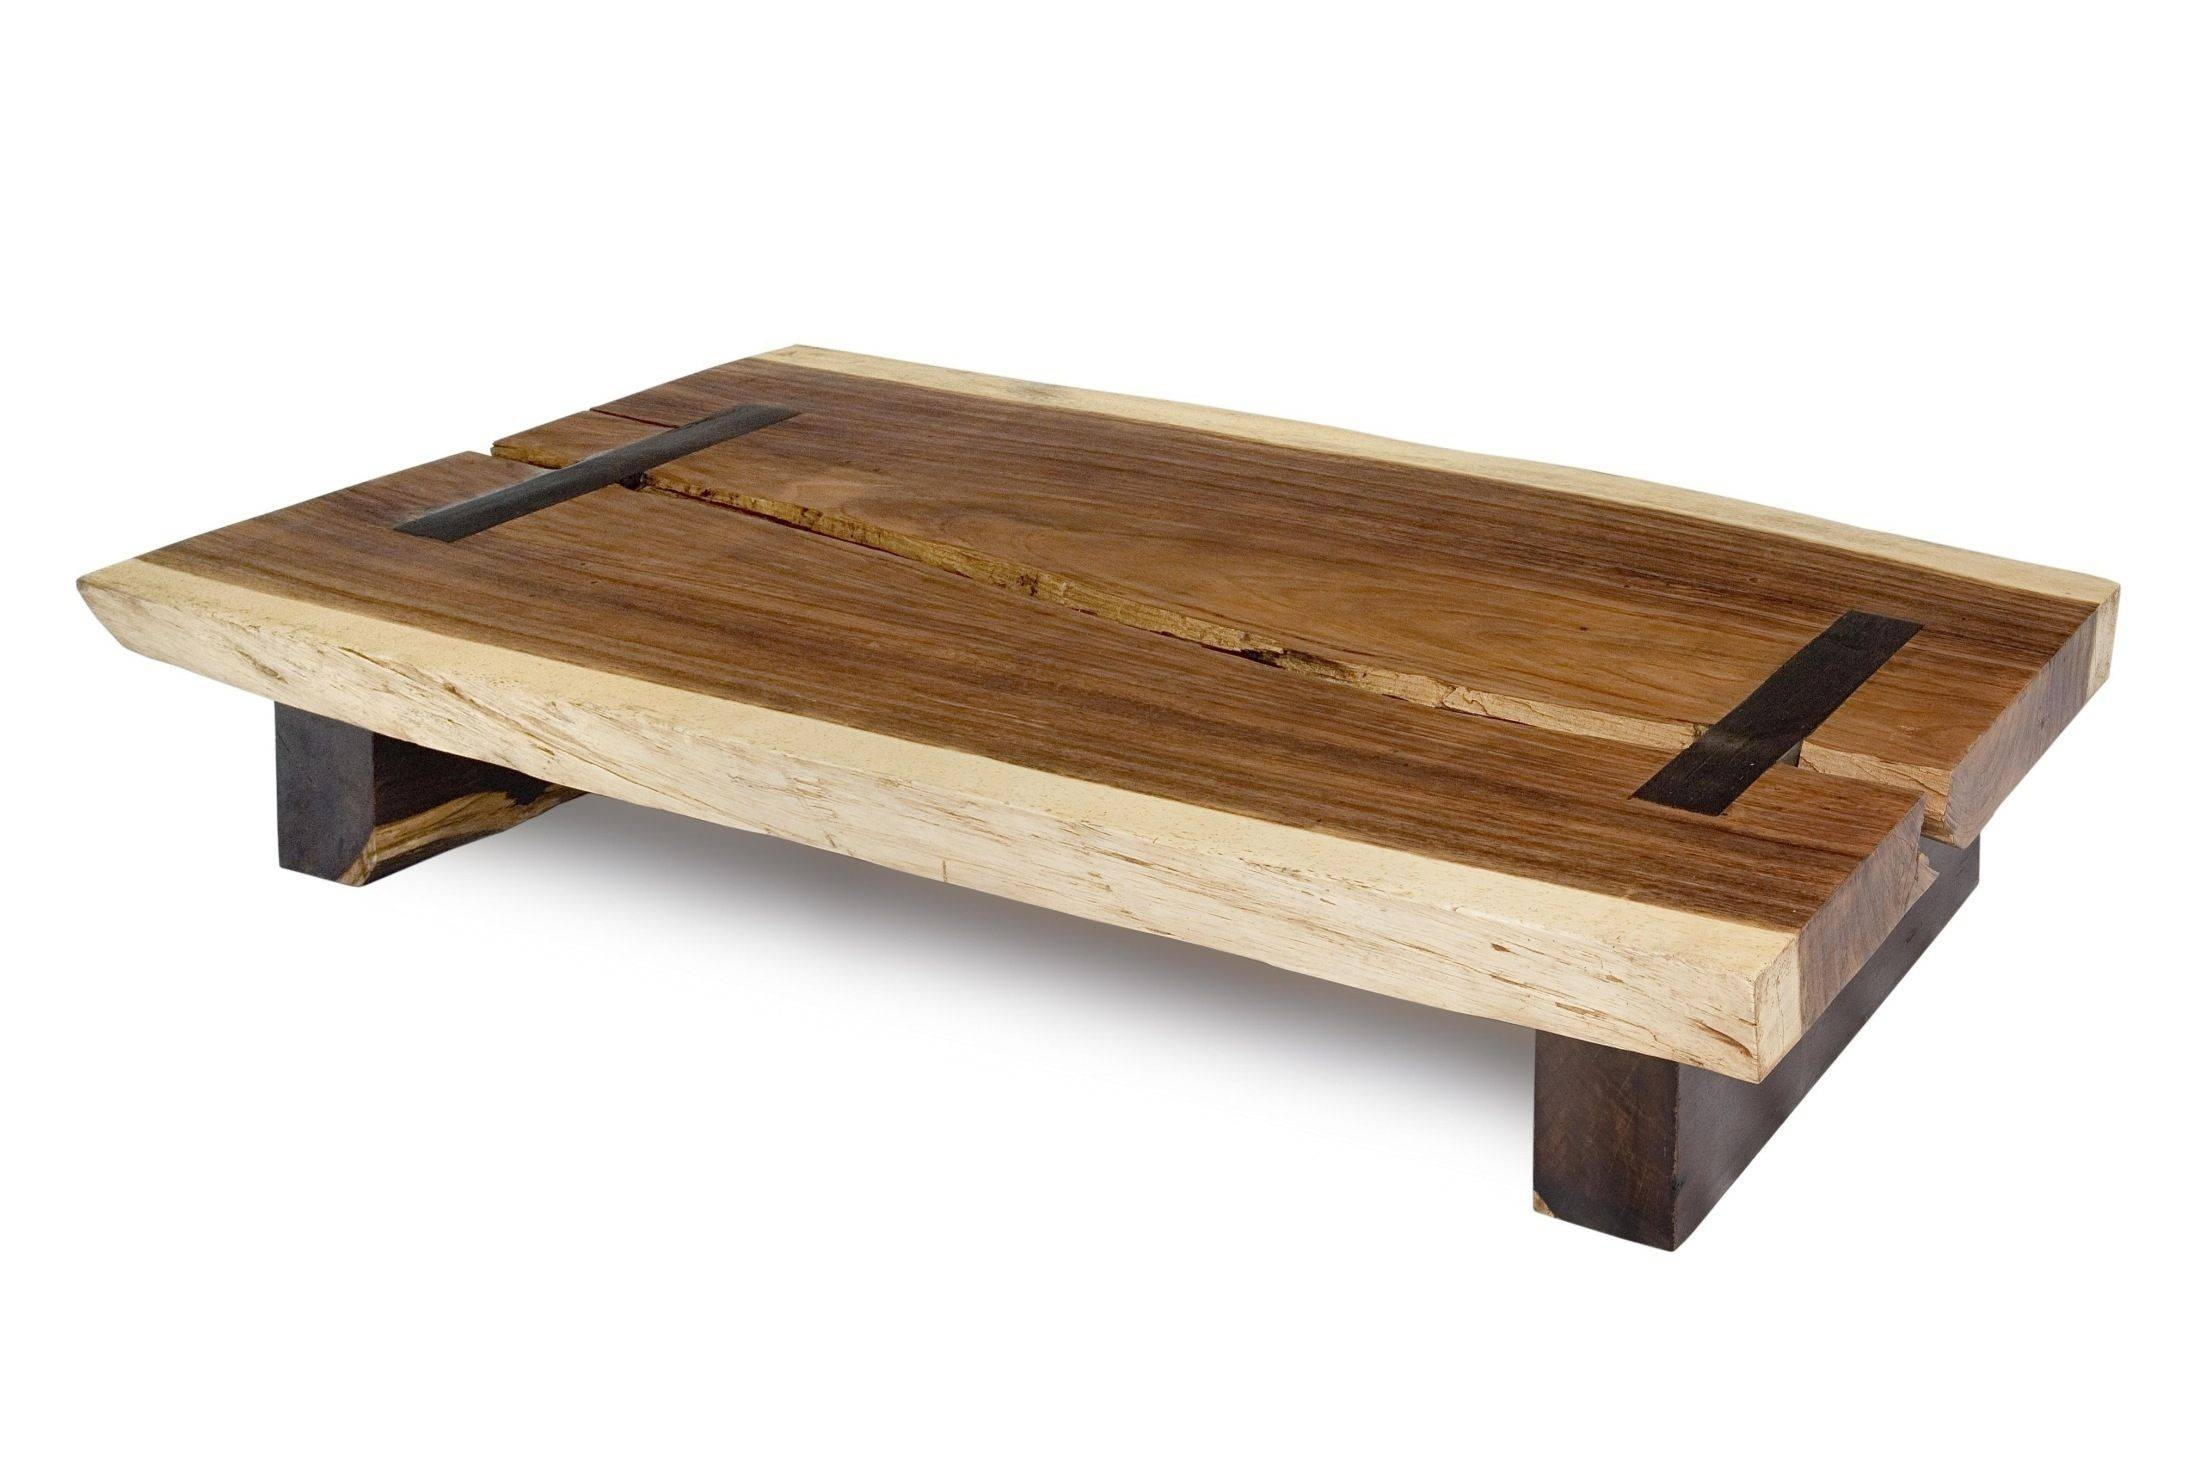 Reclaimed Wood Coffee Table Sets - Coffee Addicts for Wooden Coffee Tables (Image 11 of 15)